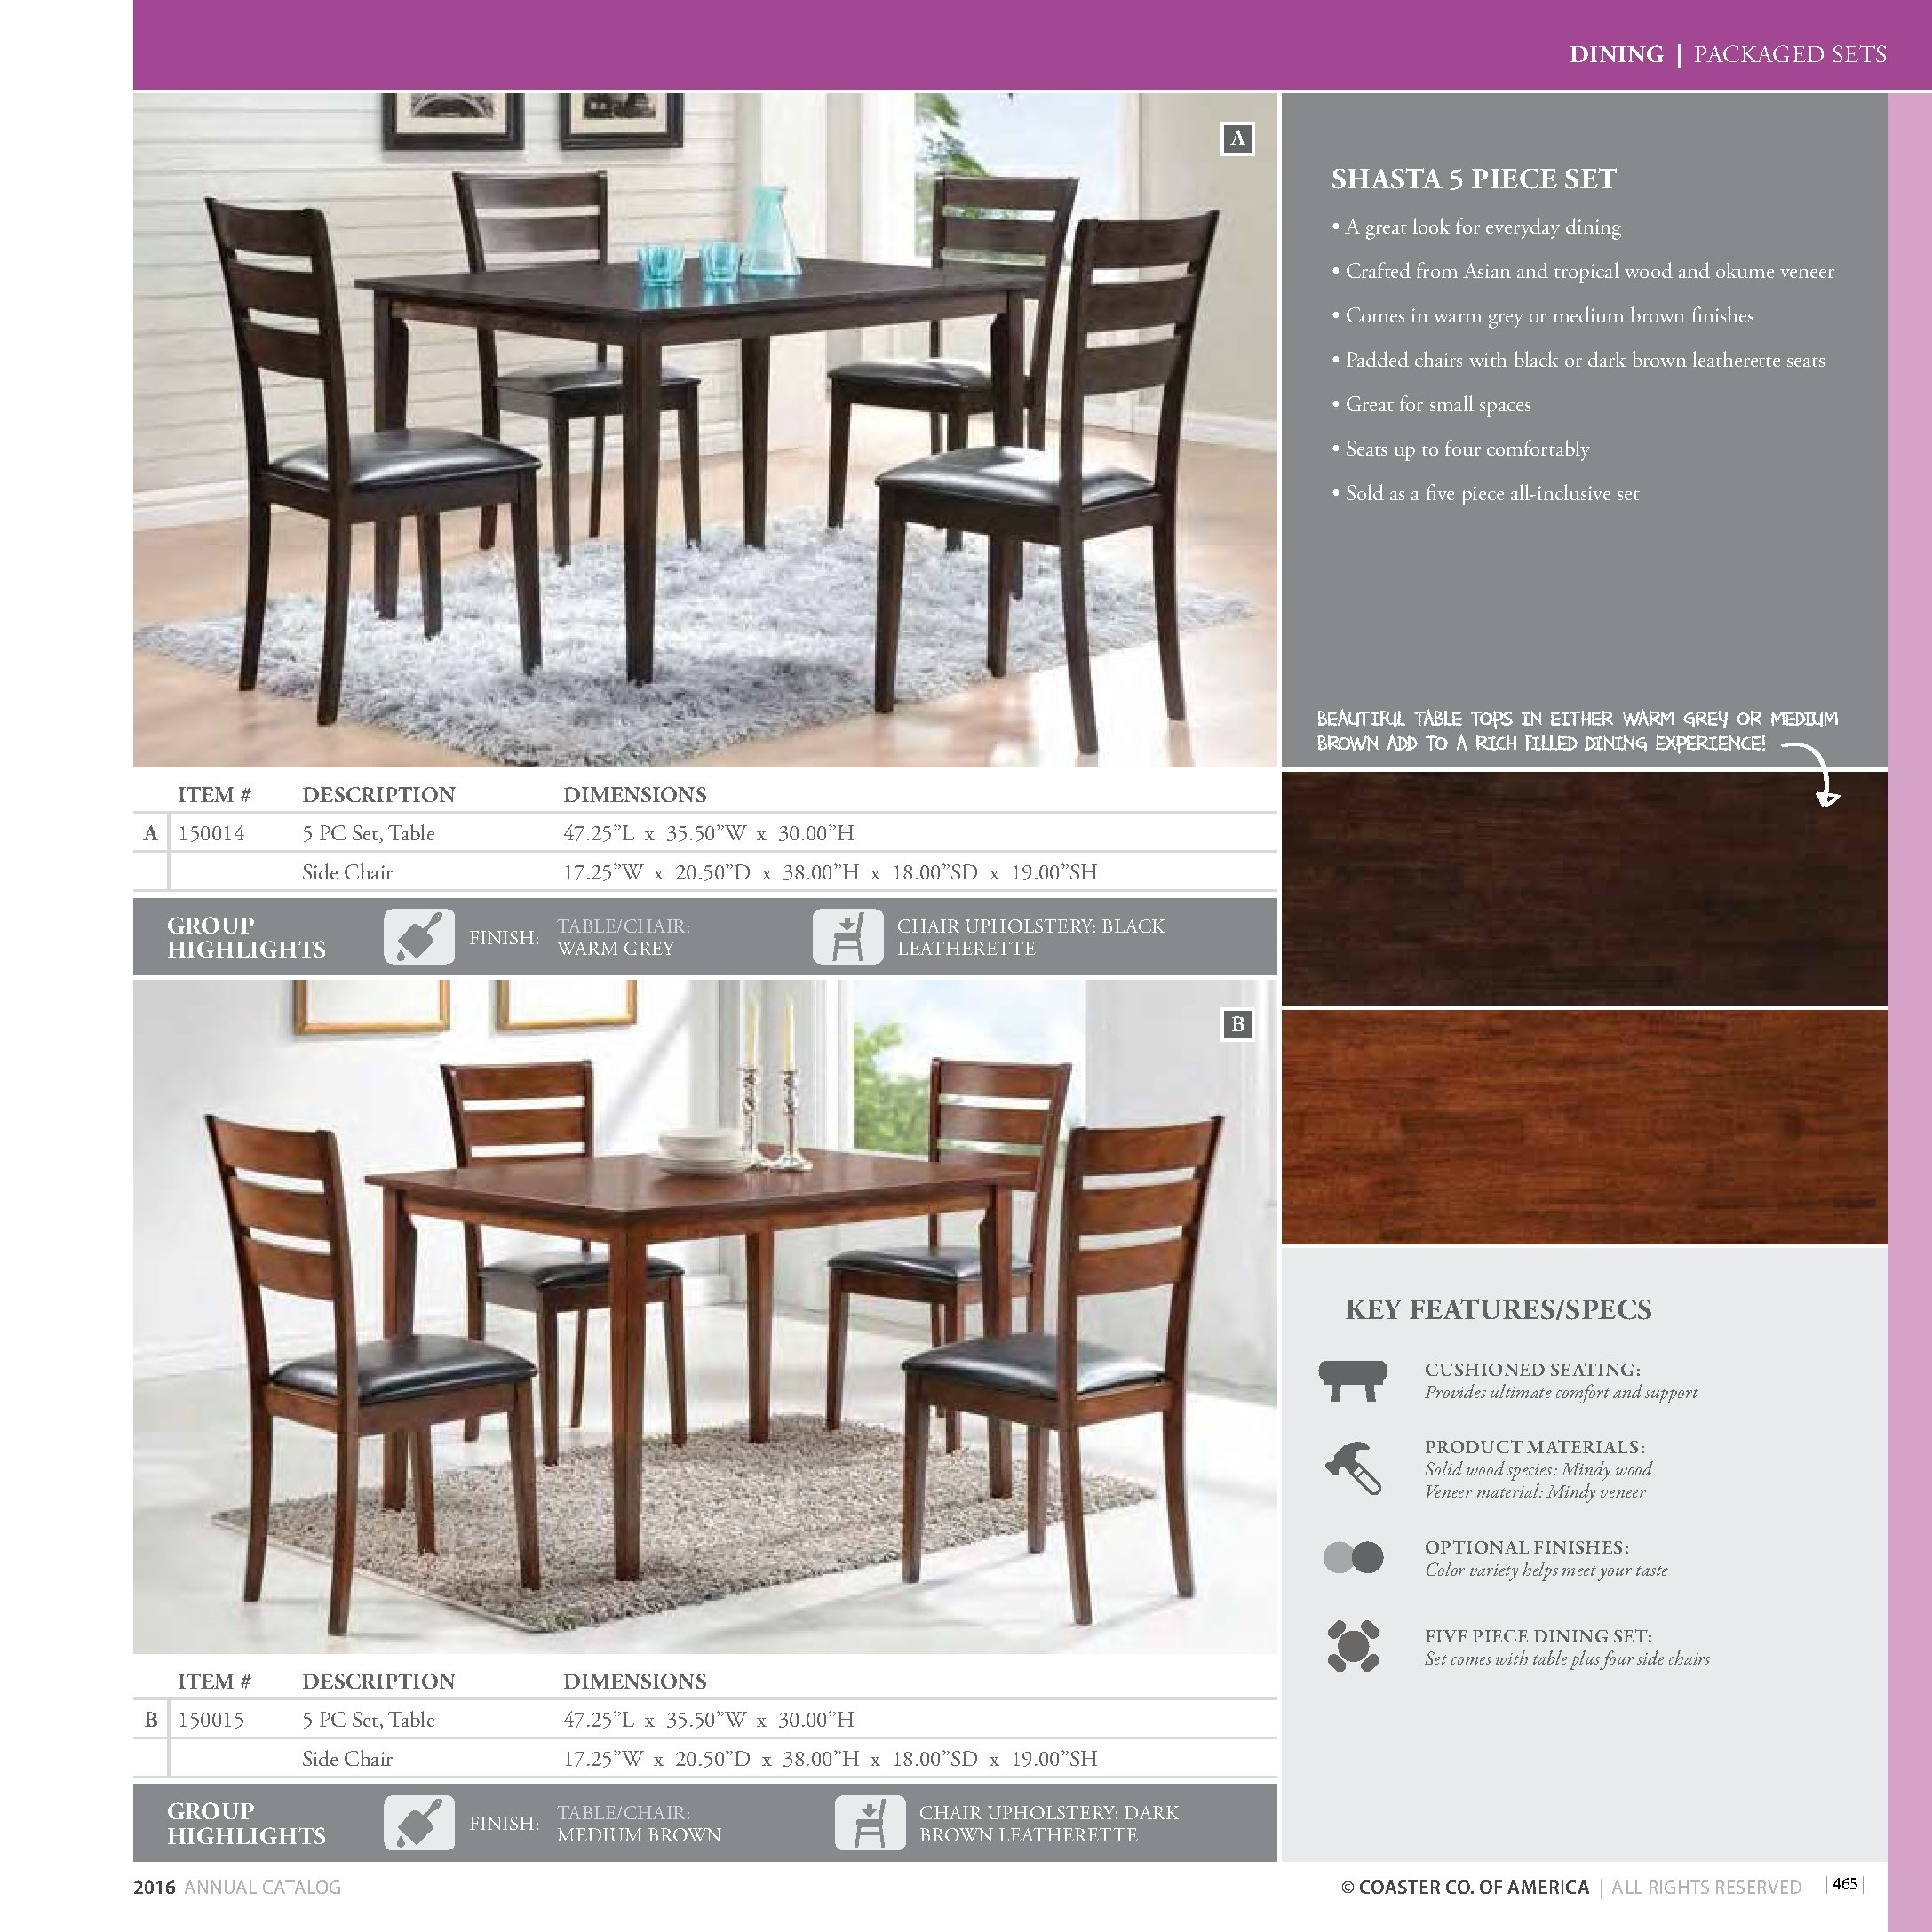 Star furniture coupons 2018